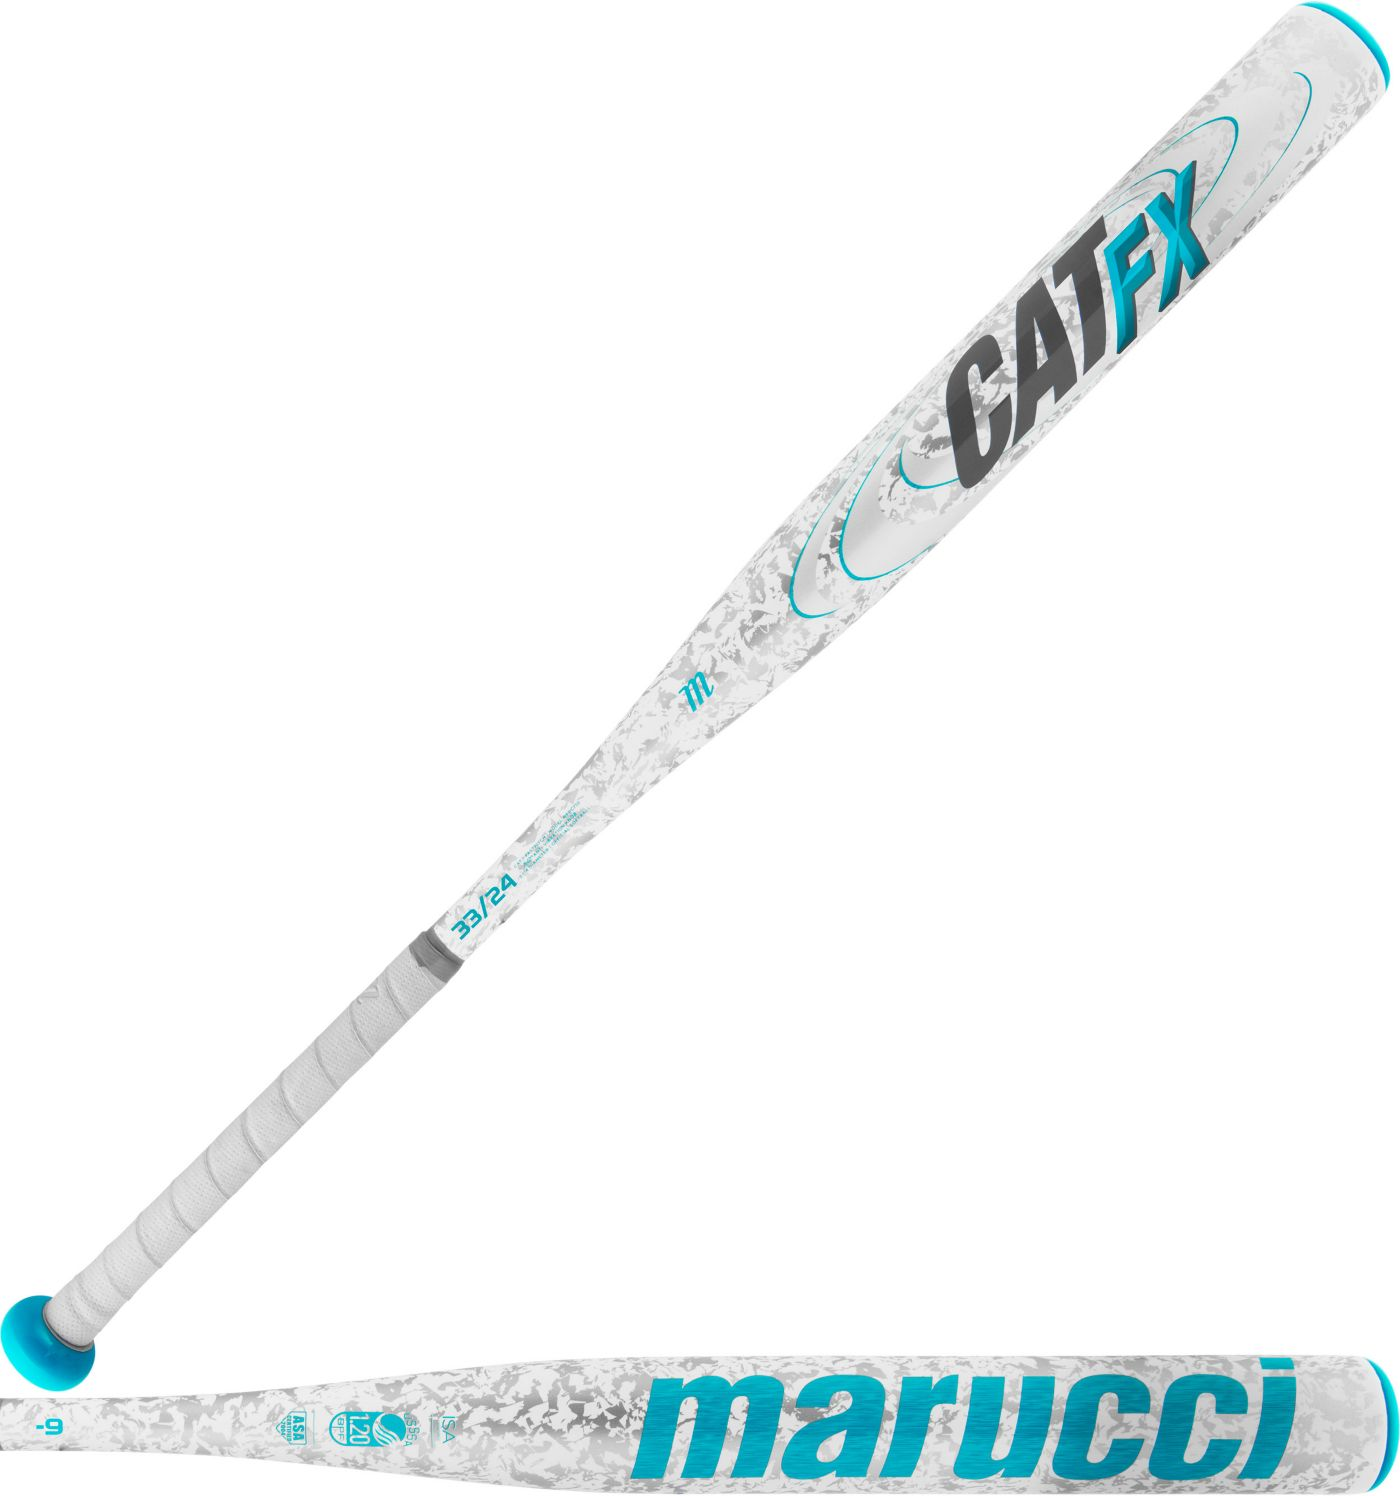 Marucci CATFX Fastpitch Bat 2018 (-9)